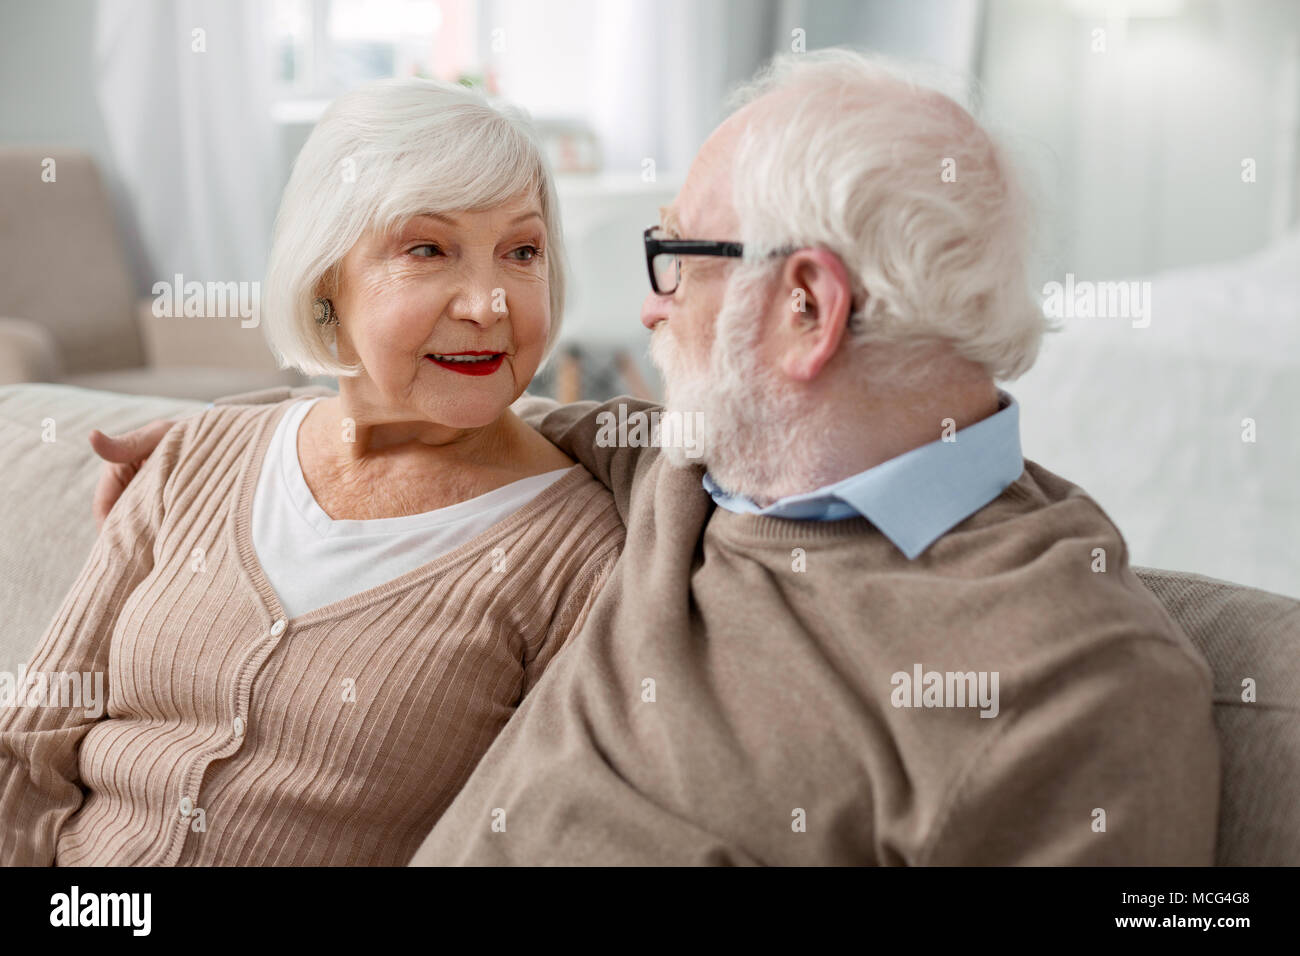 Nice aged man looking at his wife Stock Photo